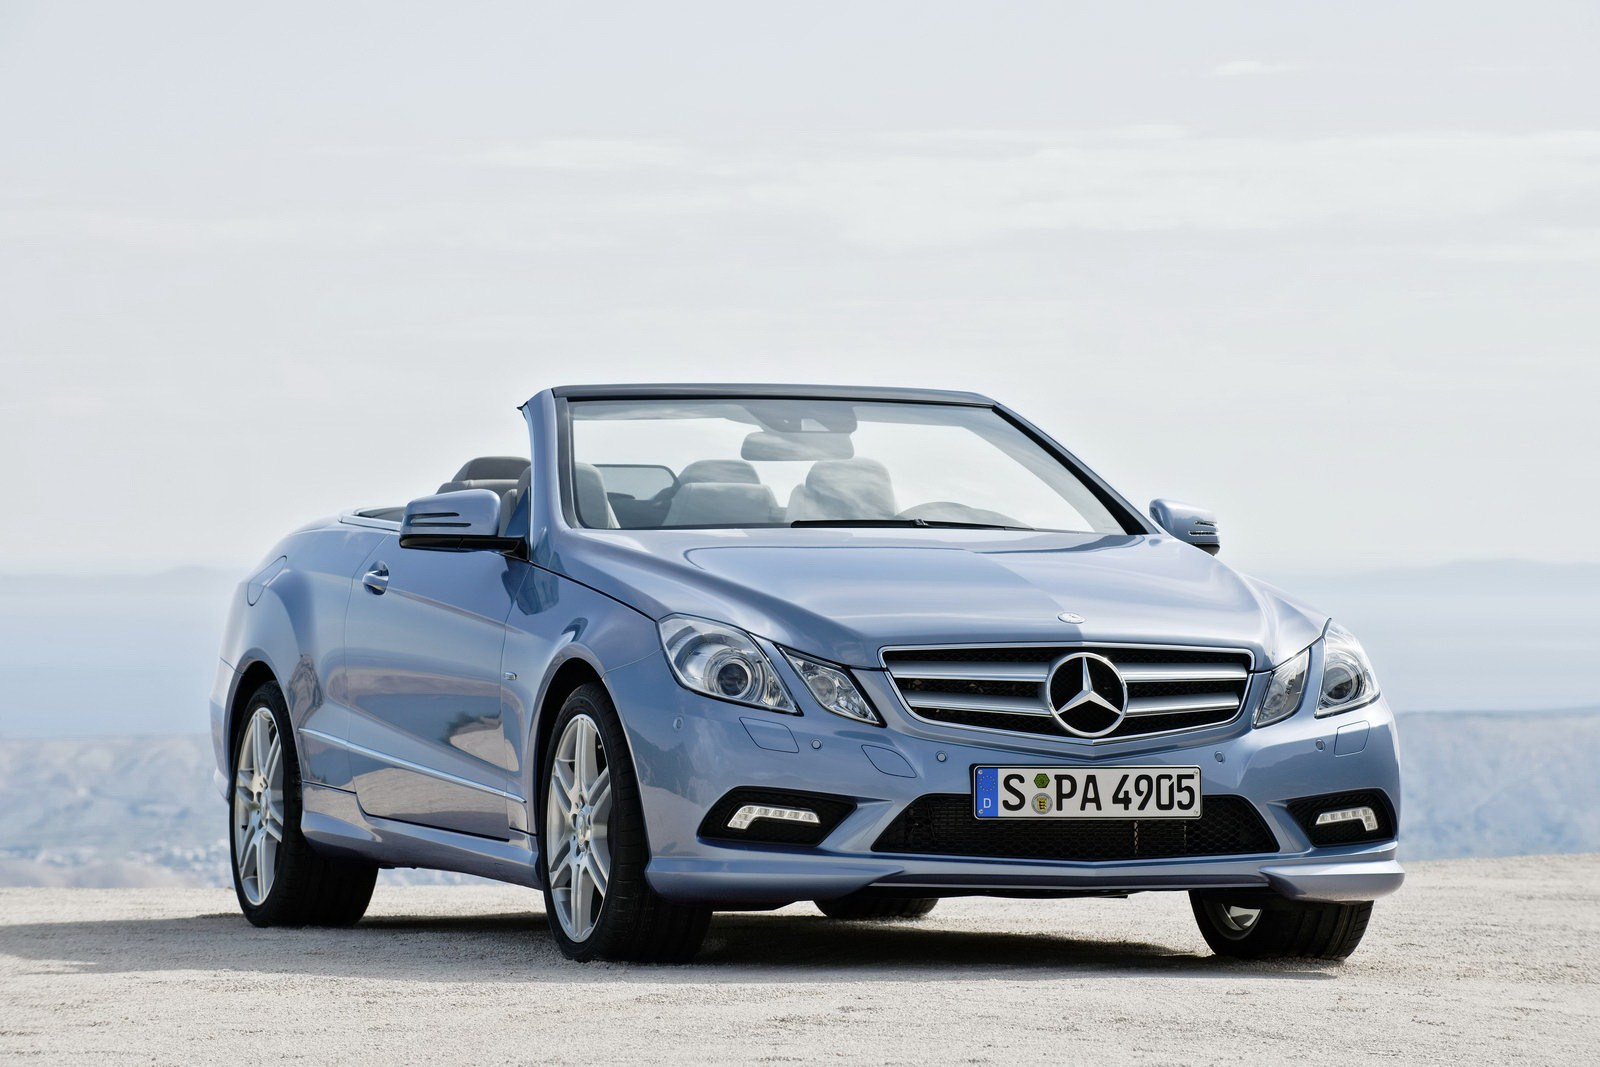 2014 mercedes benz slc car review car wallpaper for 2014 mercedes benz truck